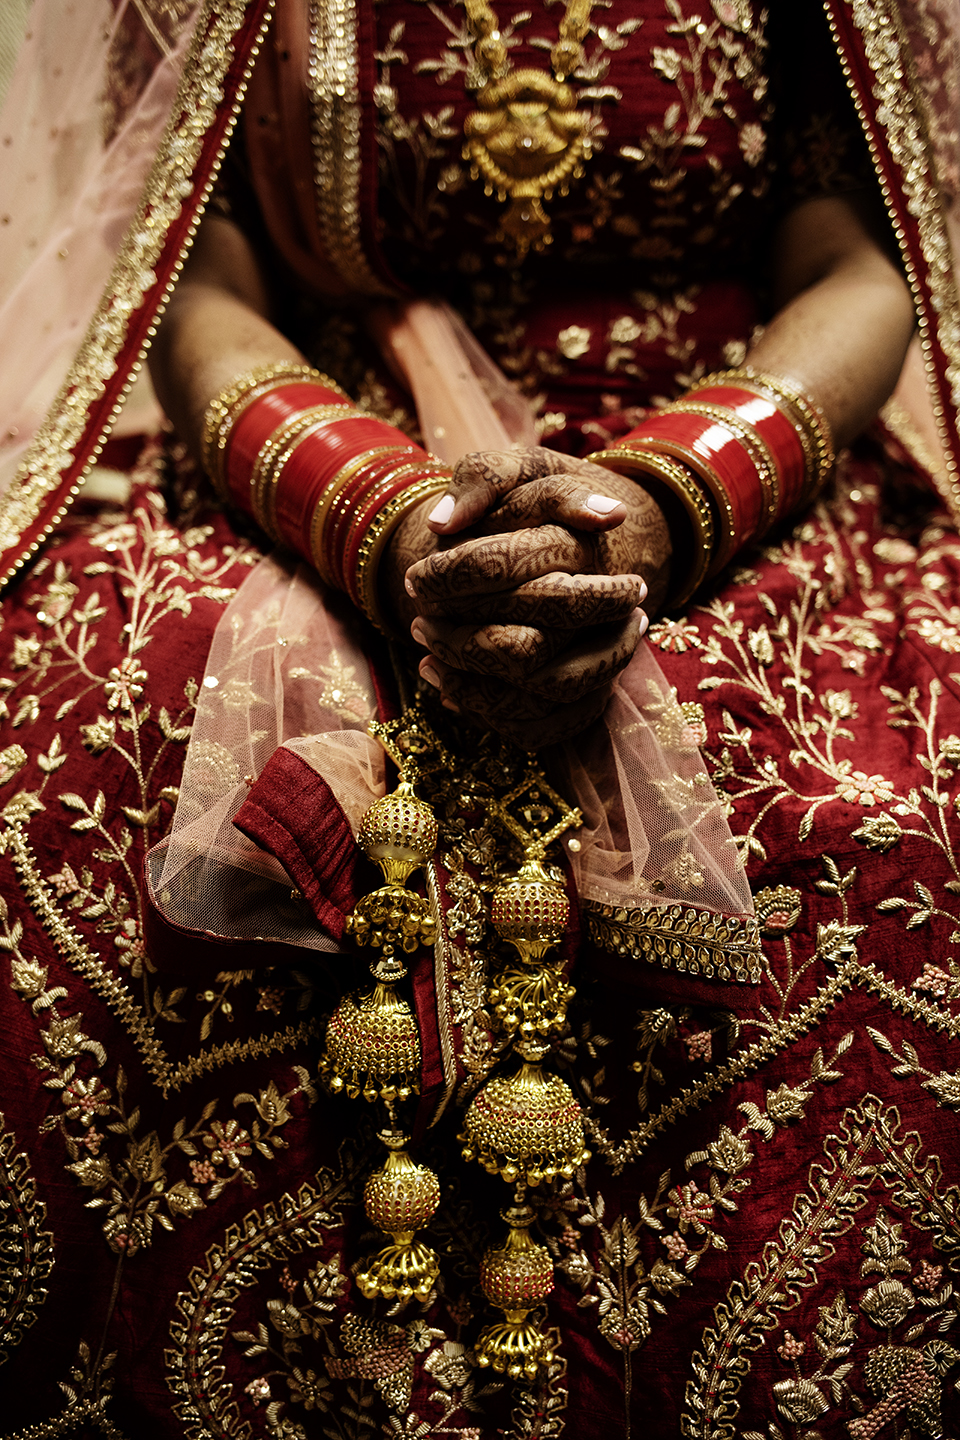 Indian Bride | Minneapolis Wedding Photos | Photography by Photogen Inc. | Eliesa Johnson | Luxury Wedding Photography Based in Minnesota